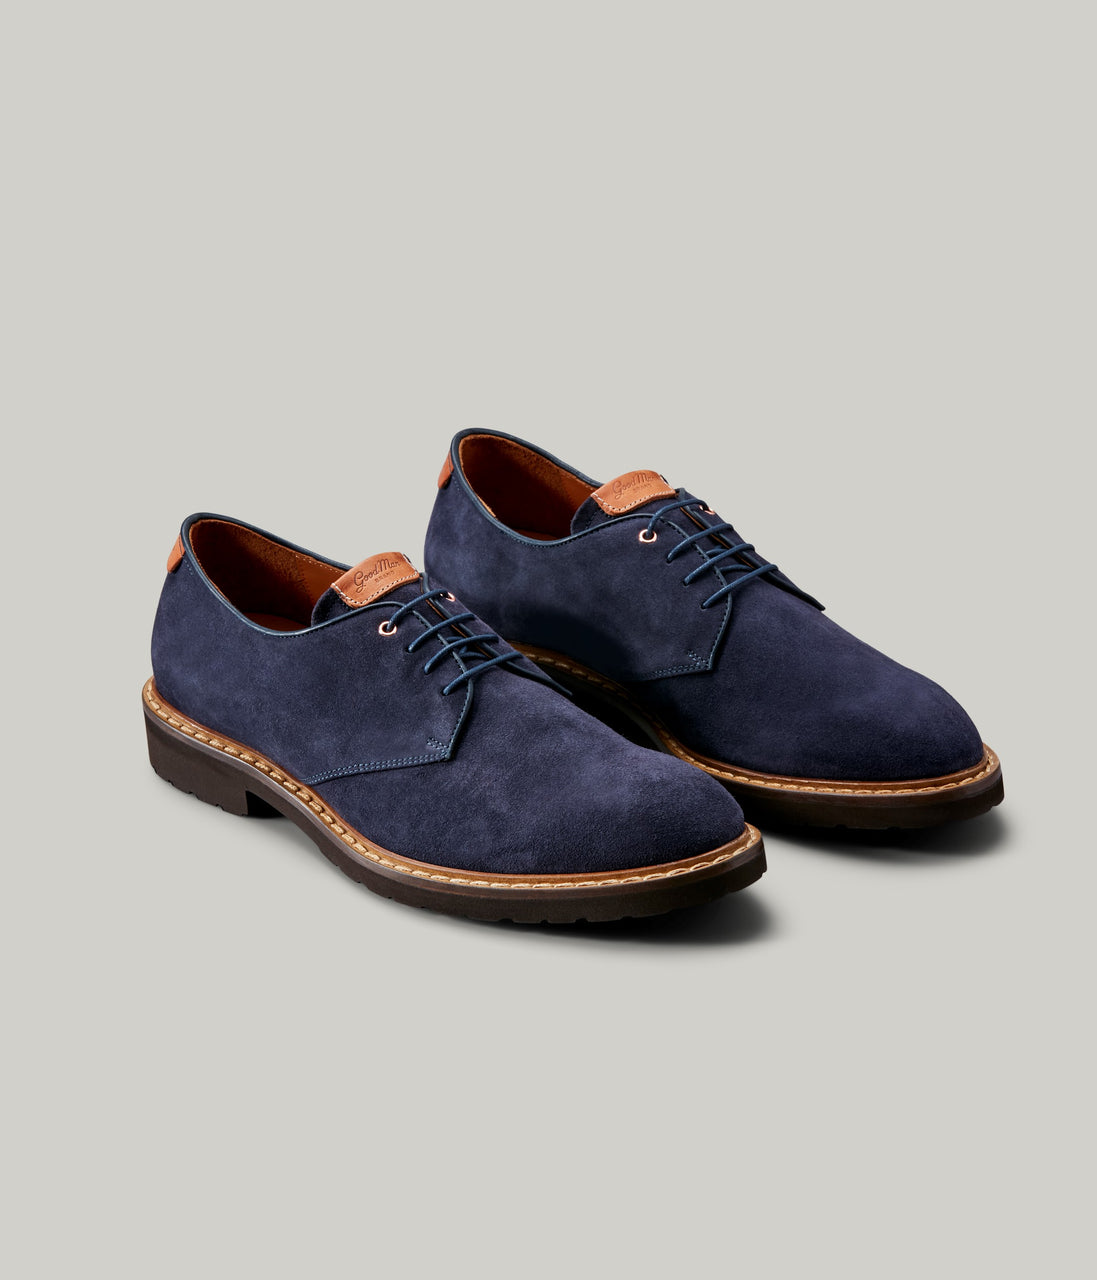 Derby Shoe - Navy - Good Man Brand - Derby Shoe - Navy